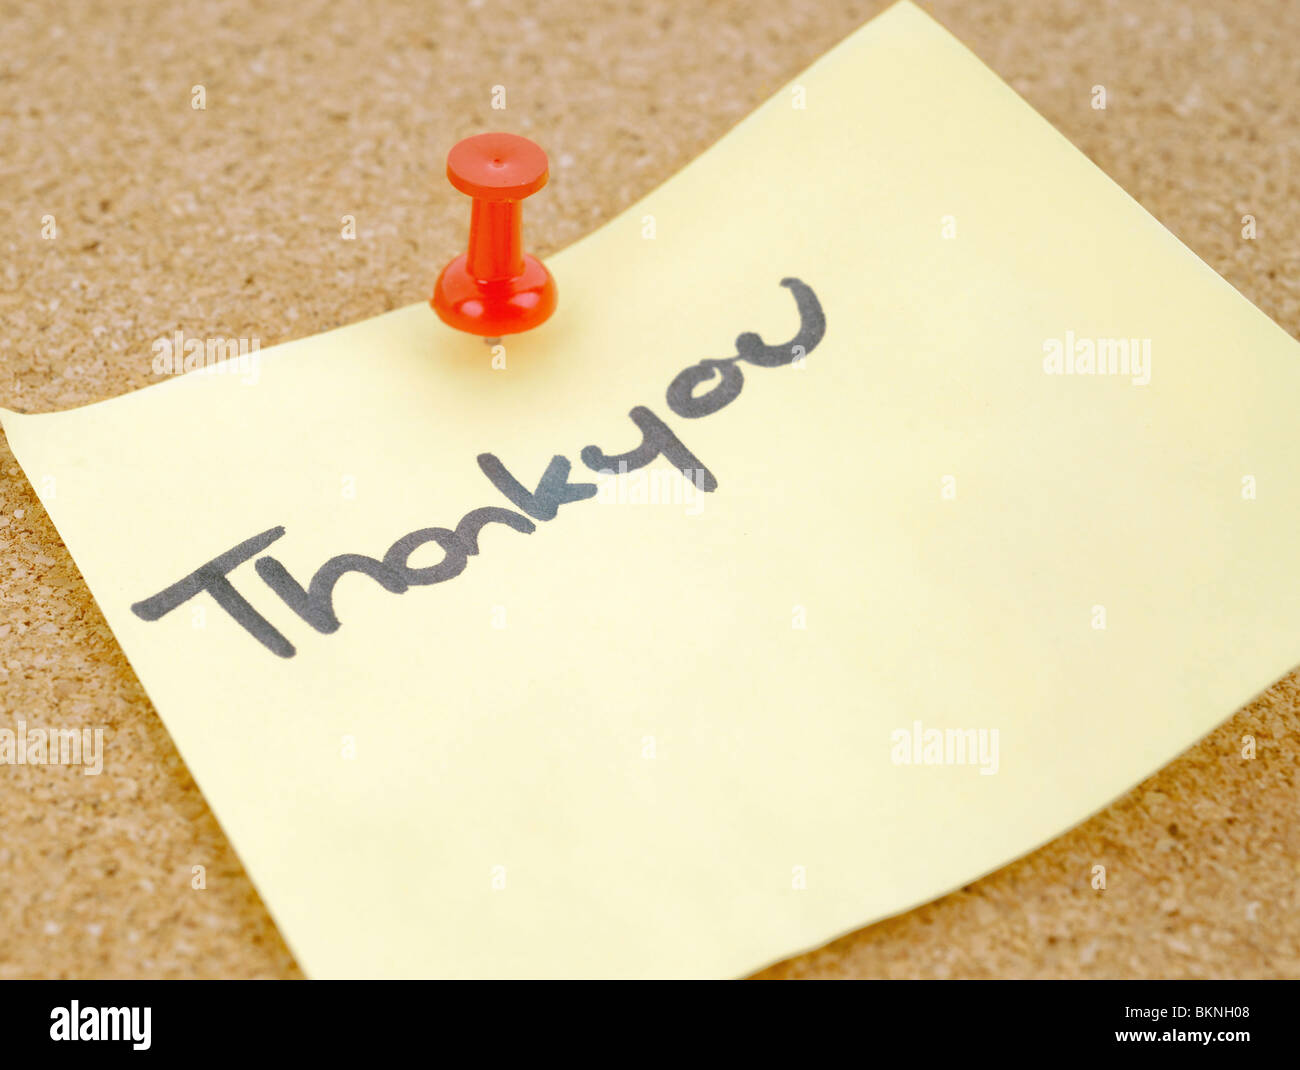 great image of a thankyou note pinned to a corkboard